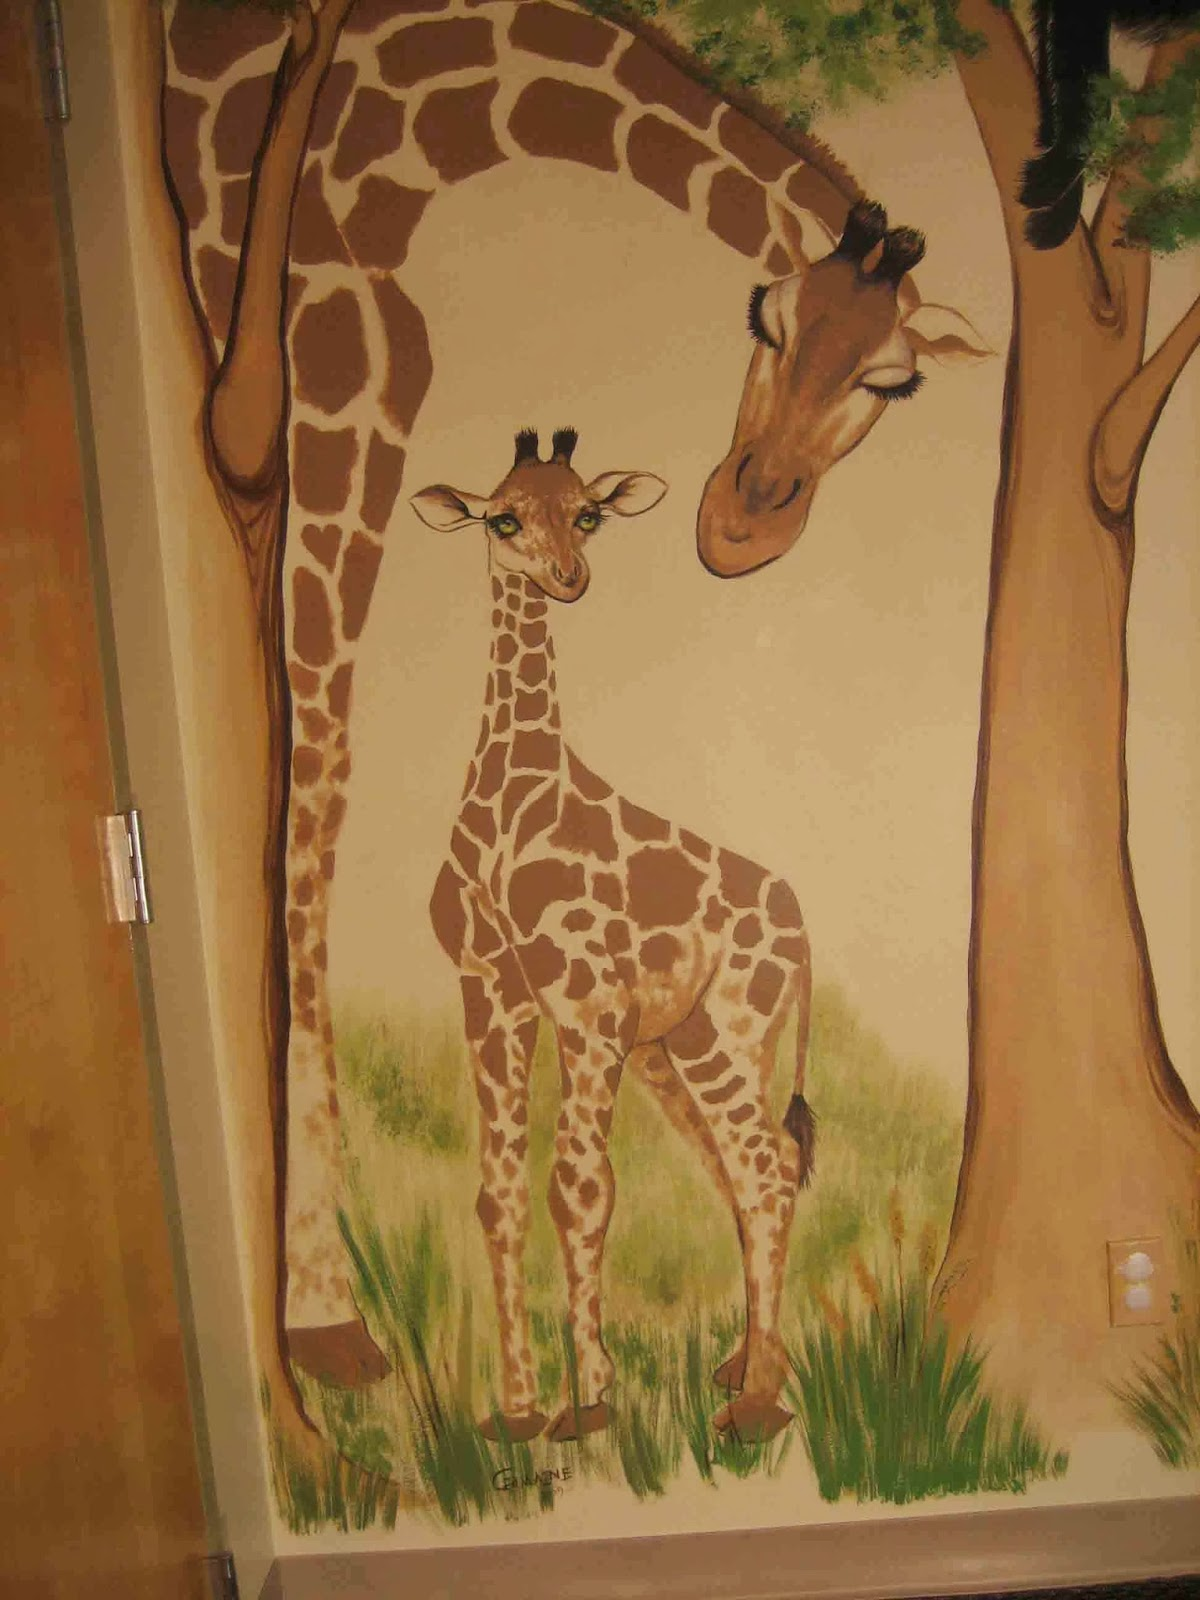 Wall Decal Quotes: Jungle Wall Art